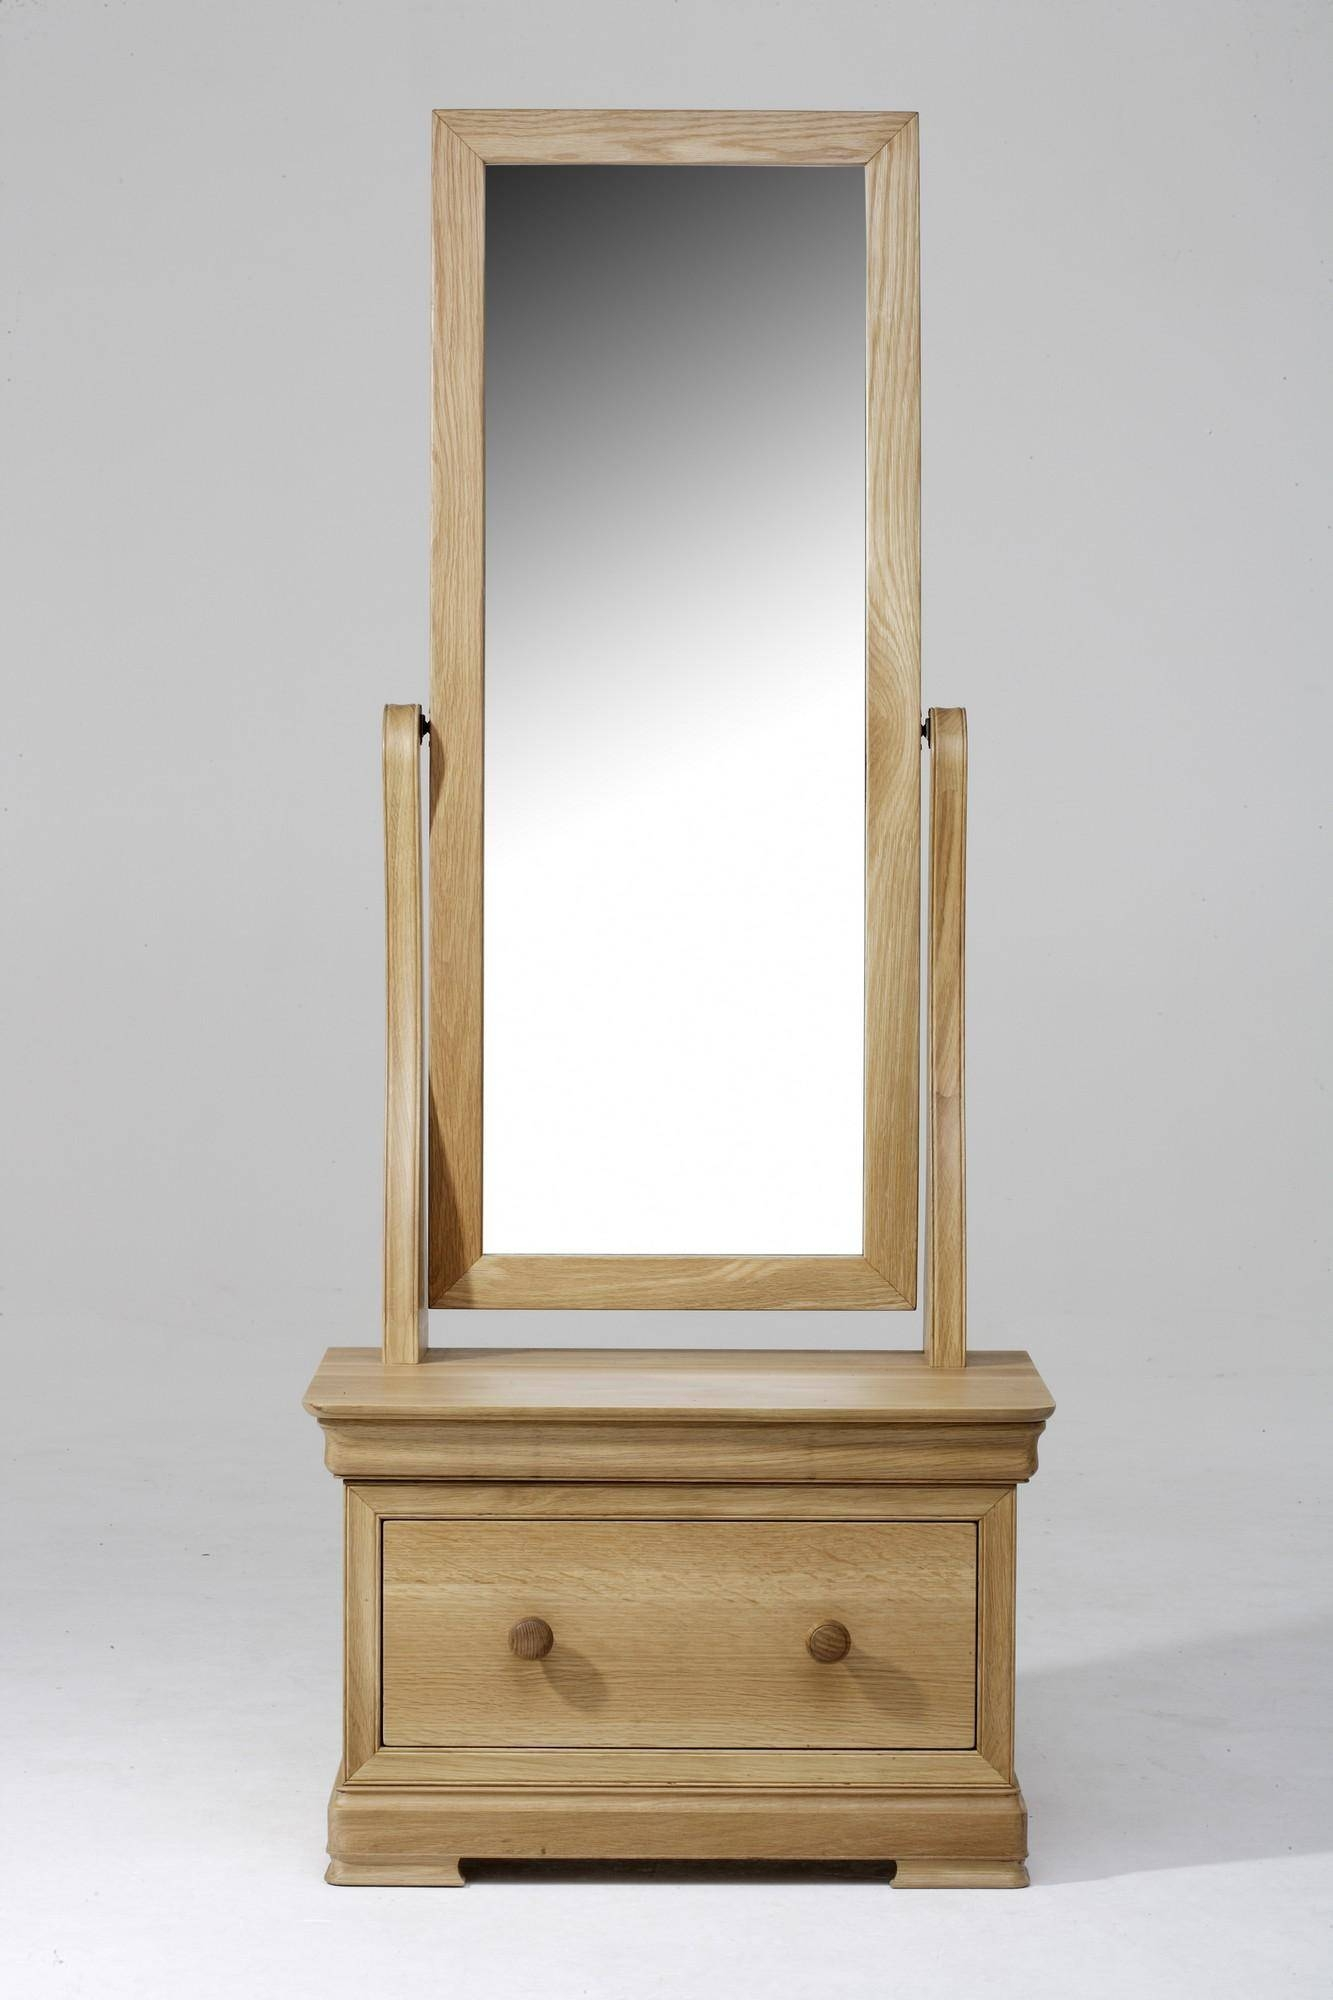 Decorating: Amusing Cheval Mirror For Home Furniture Ideas — Mtyp In Free Standing Mirrors With Drawer (View 10 of 25)